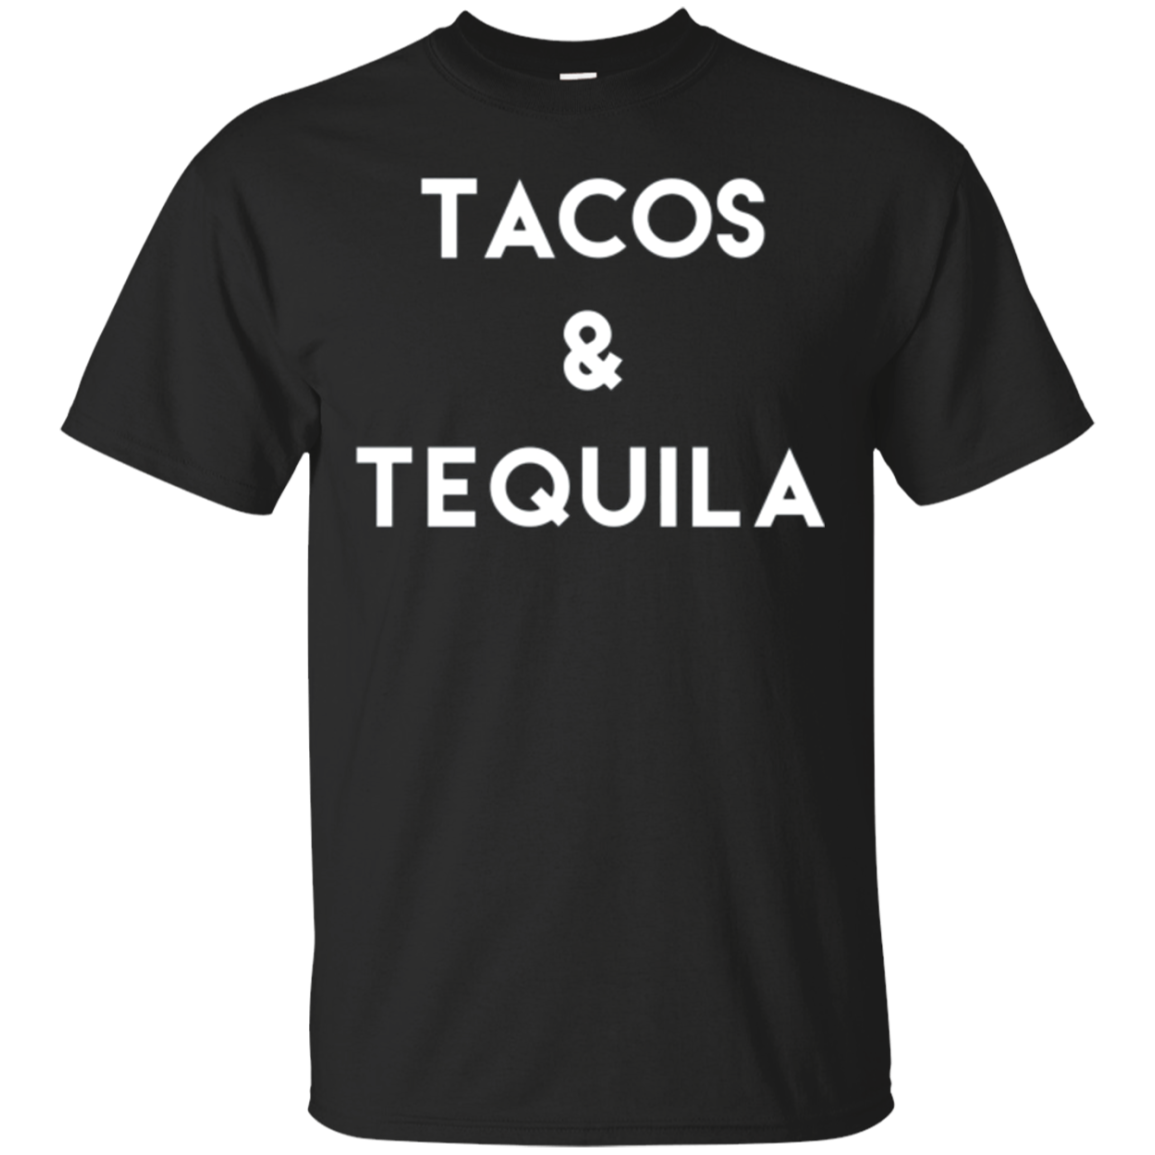 Fun Tacos And Tequila T-shirt